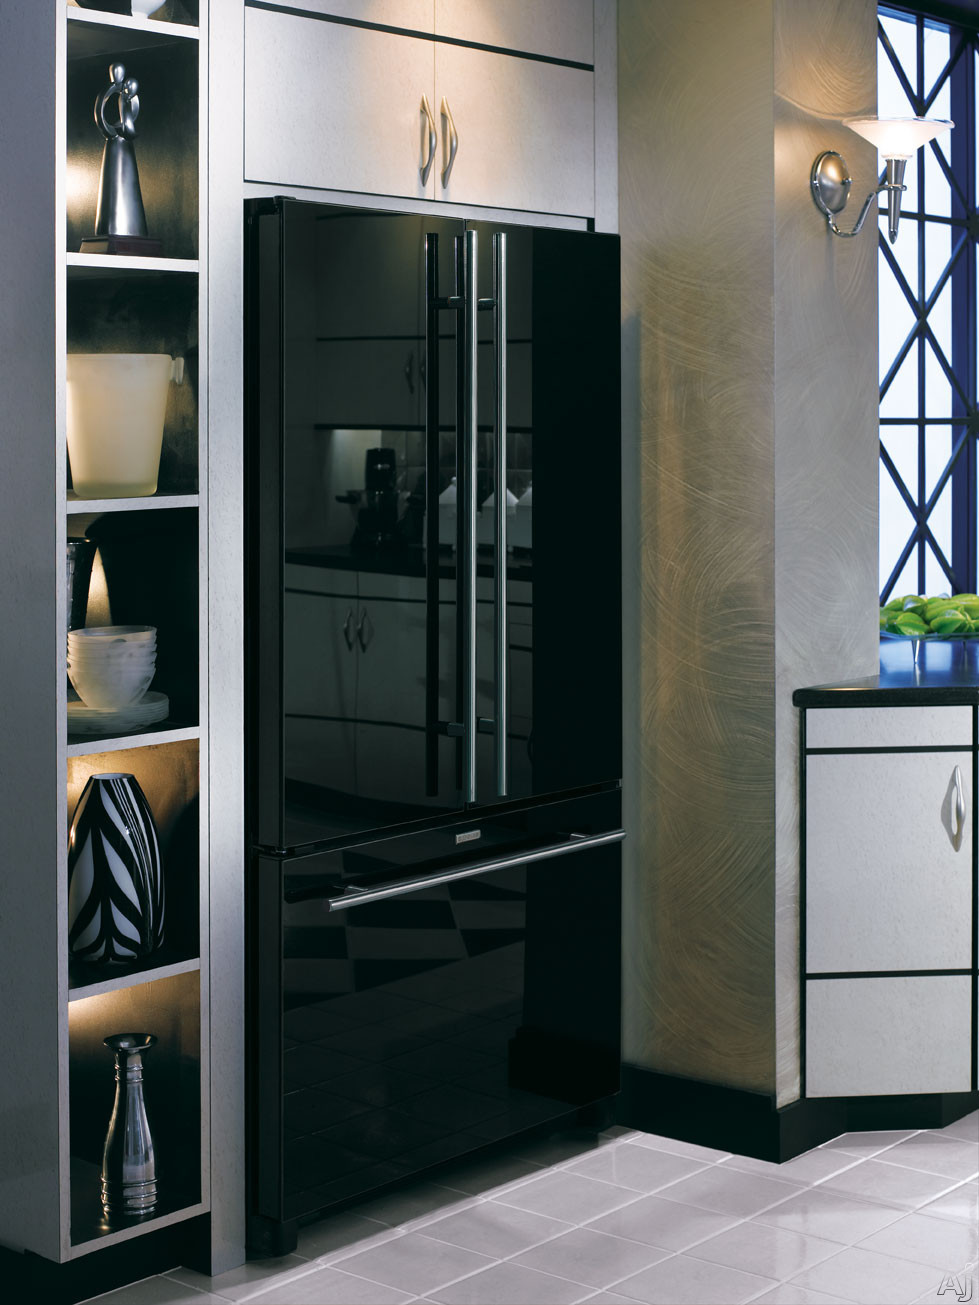 Jenn Air 39 Floating 39 Black Glass Fridge